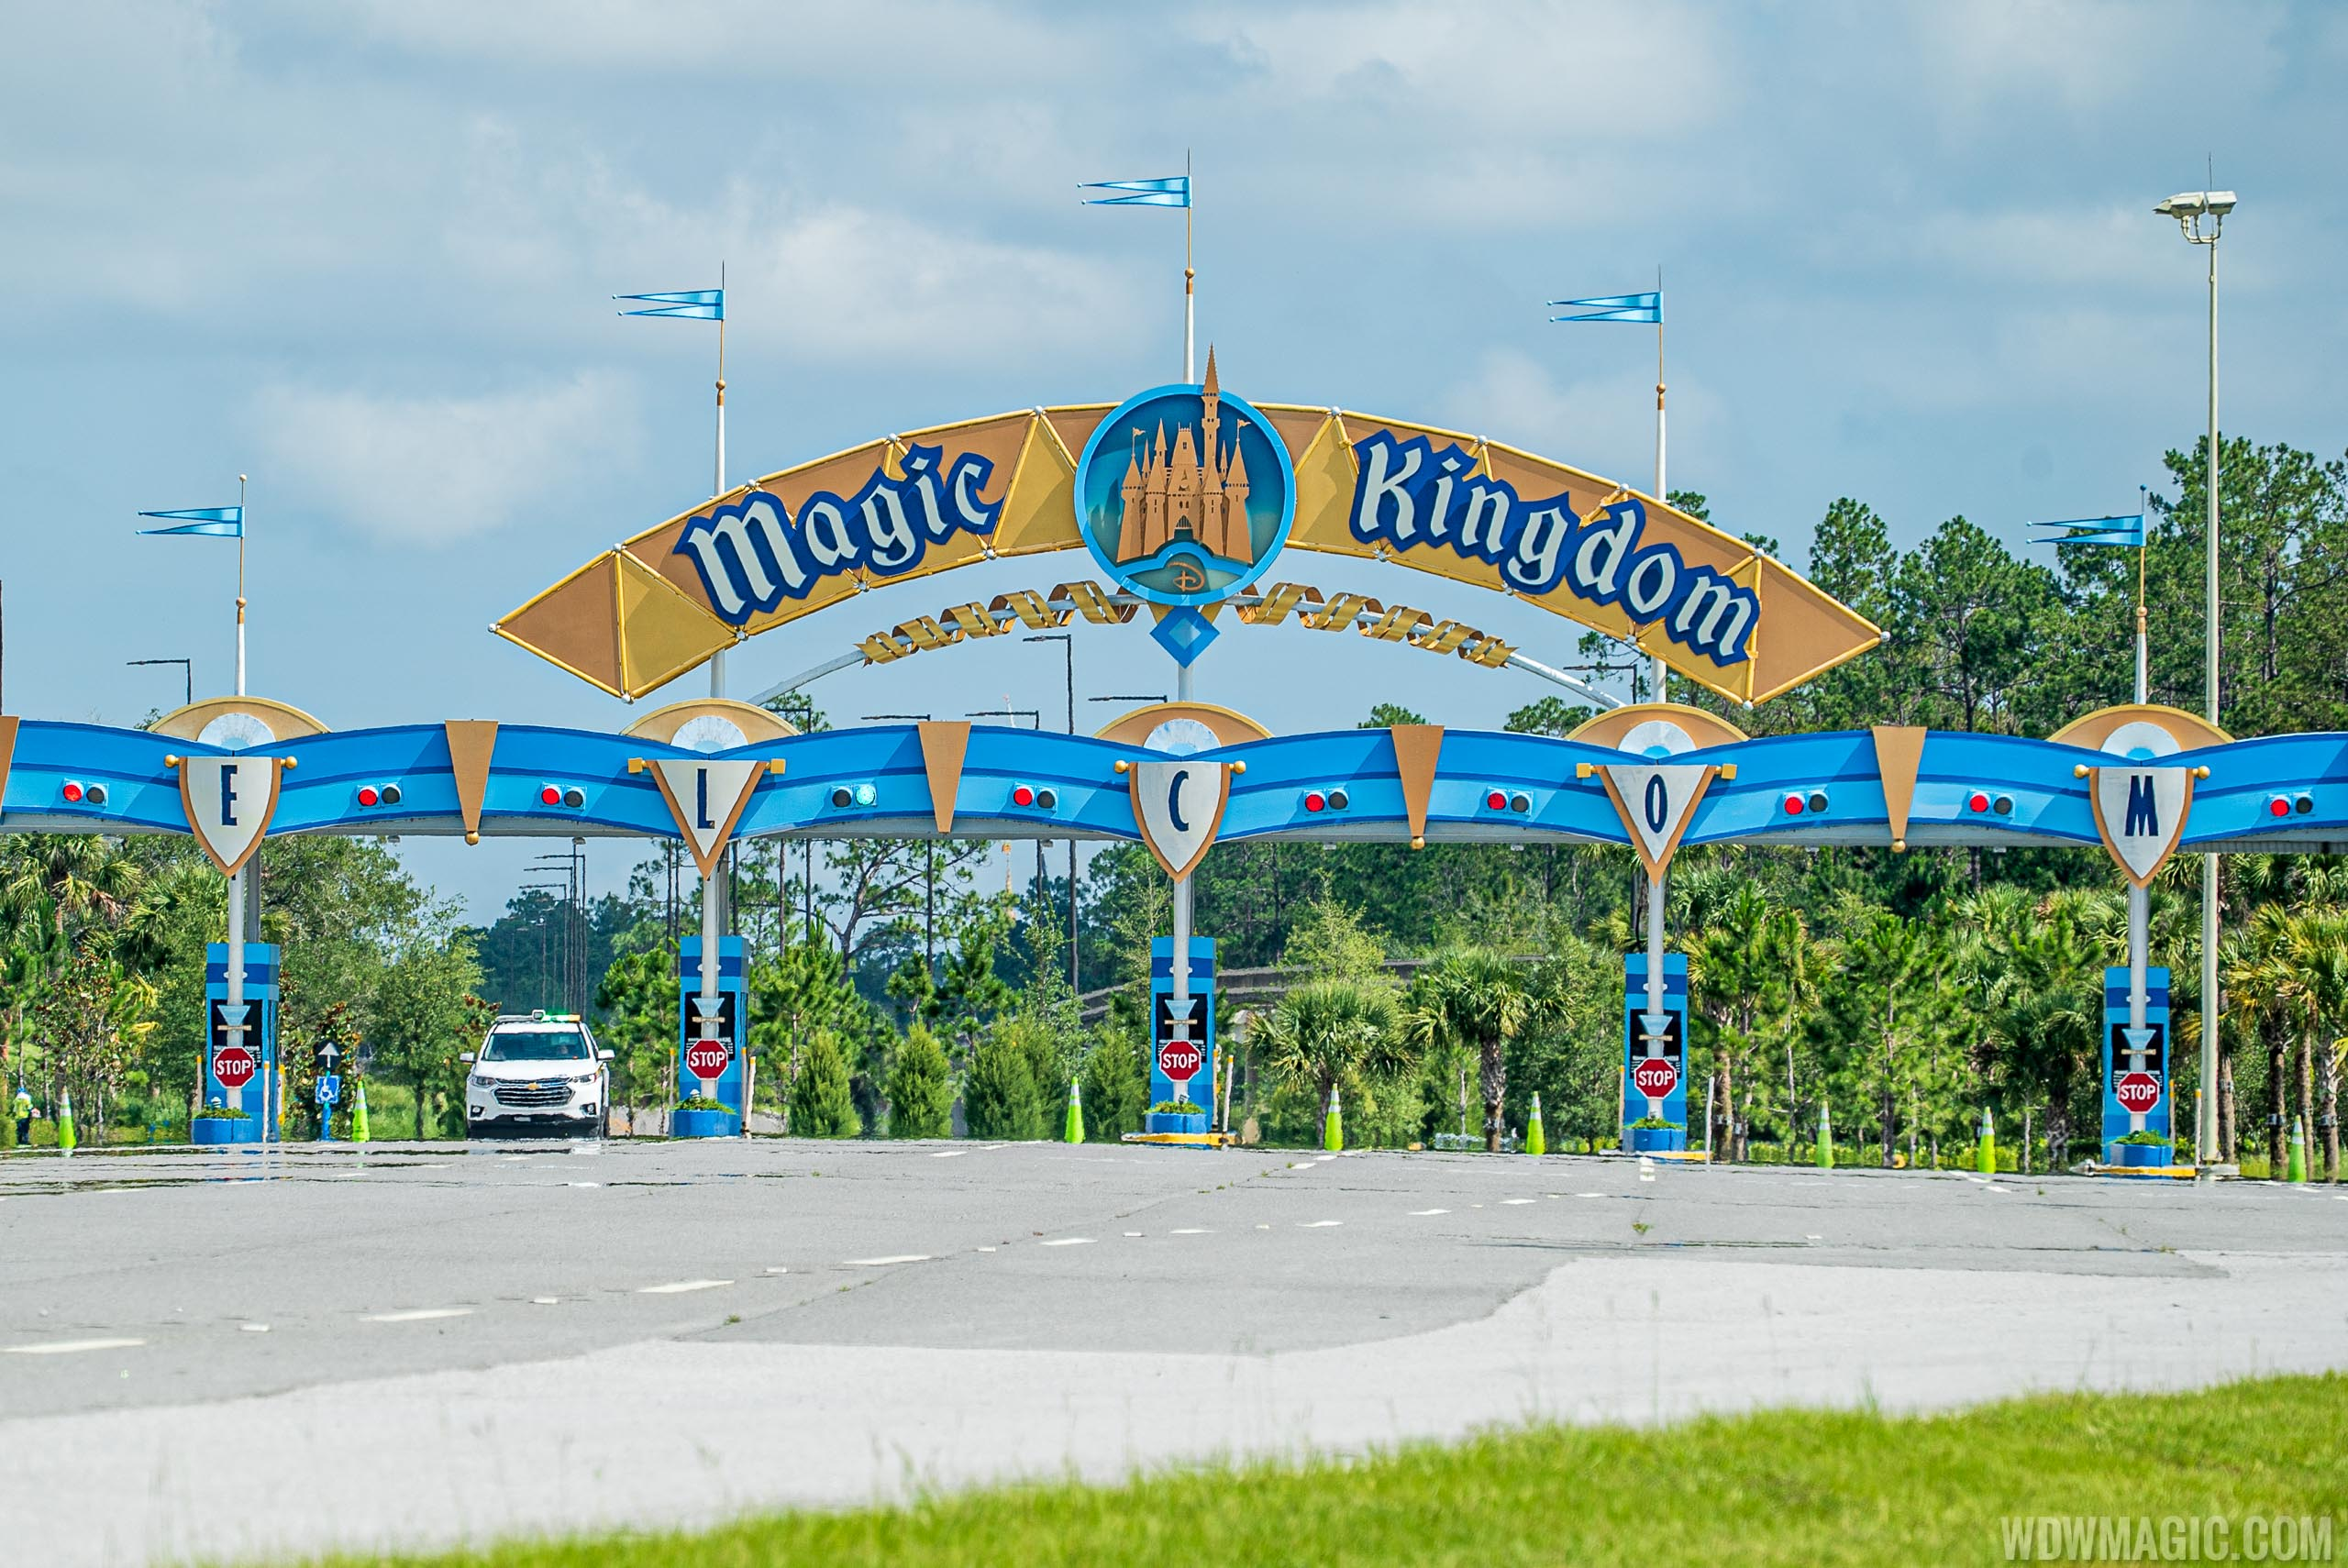 Magic Kingdom remains on course to reopen on July 11 despite rising COVID-19 cases in Florida